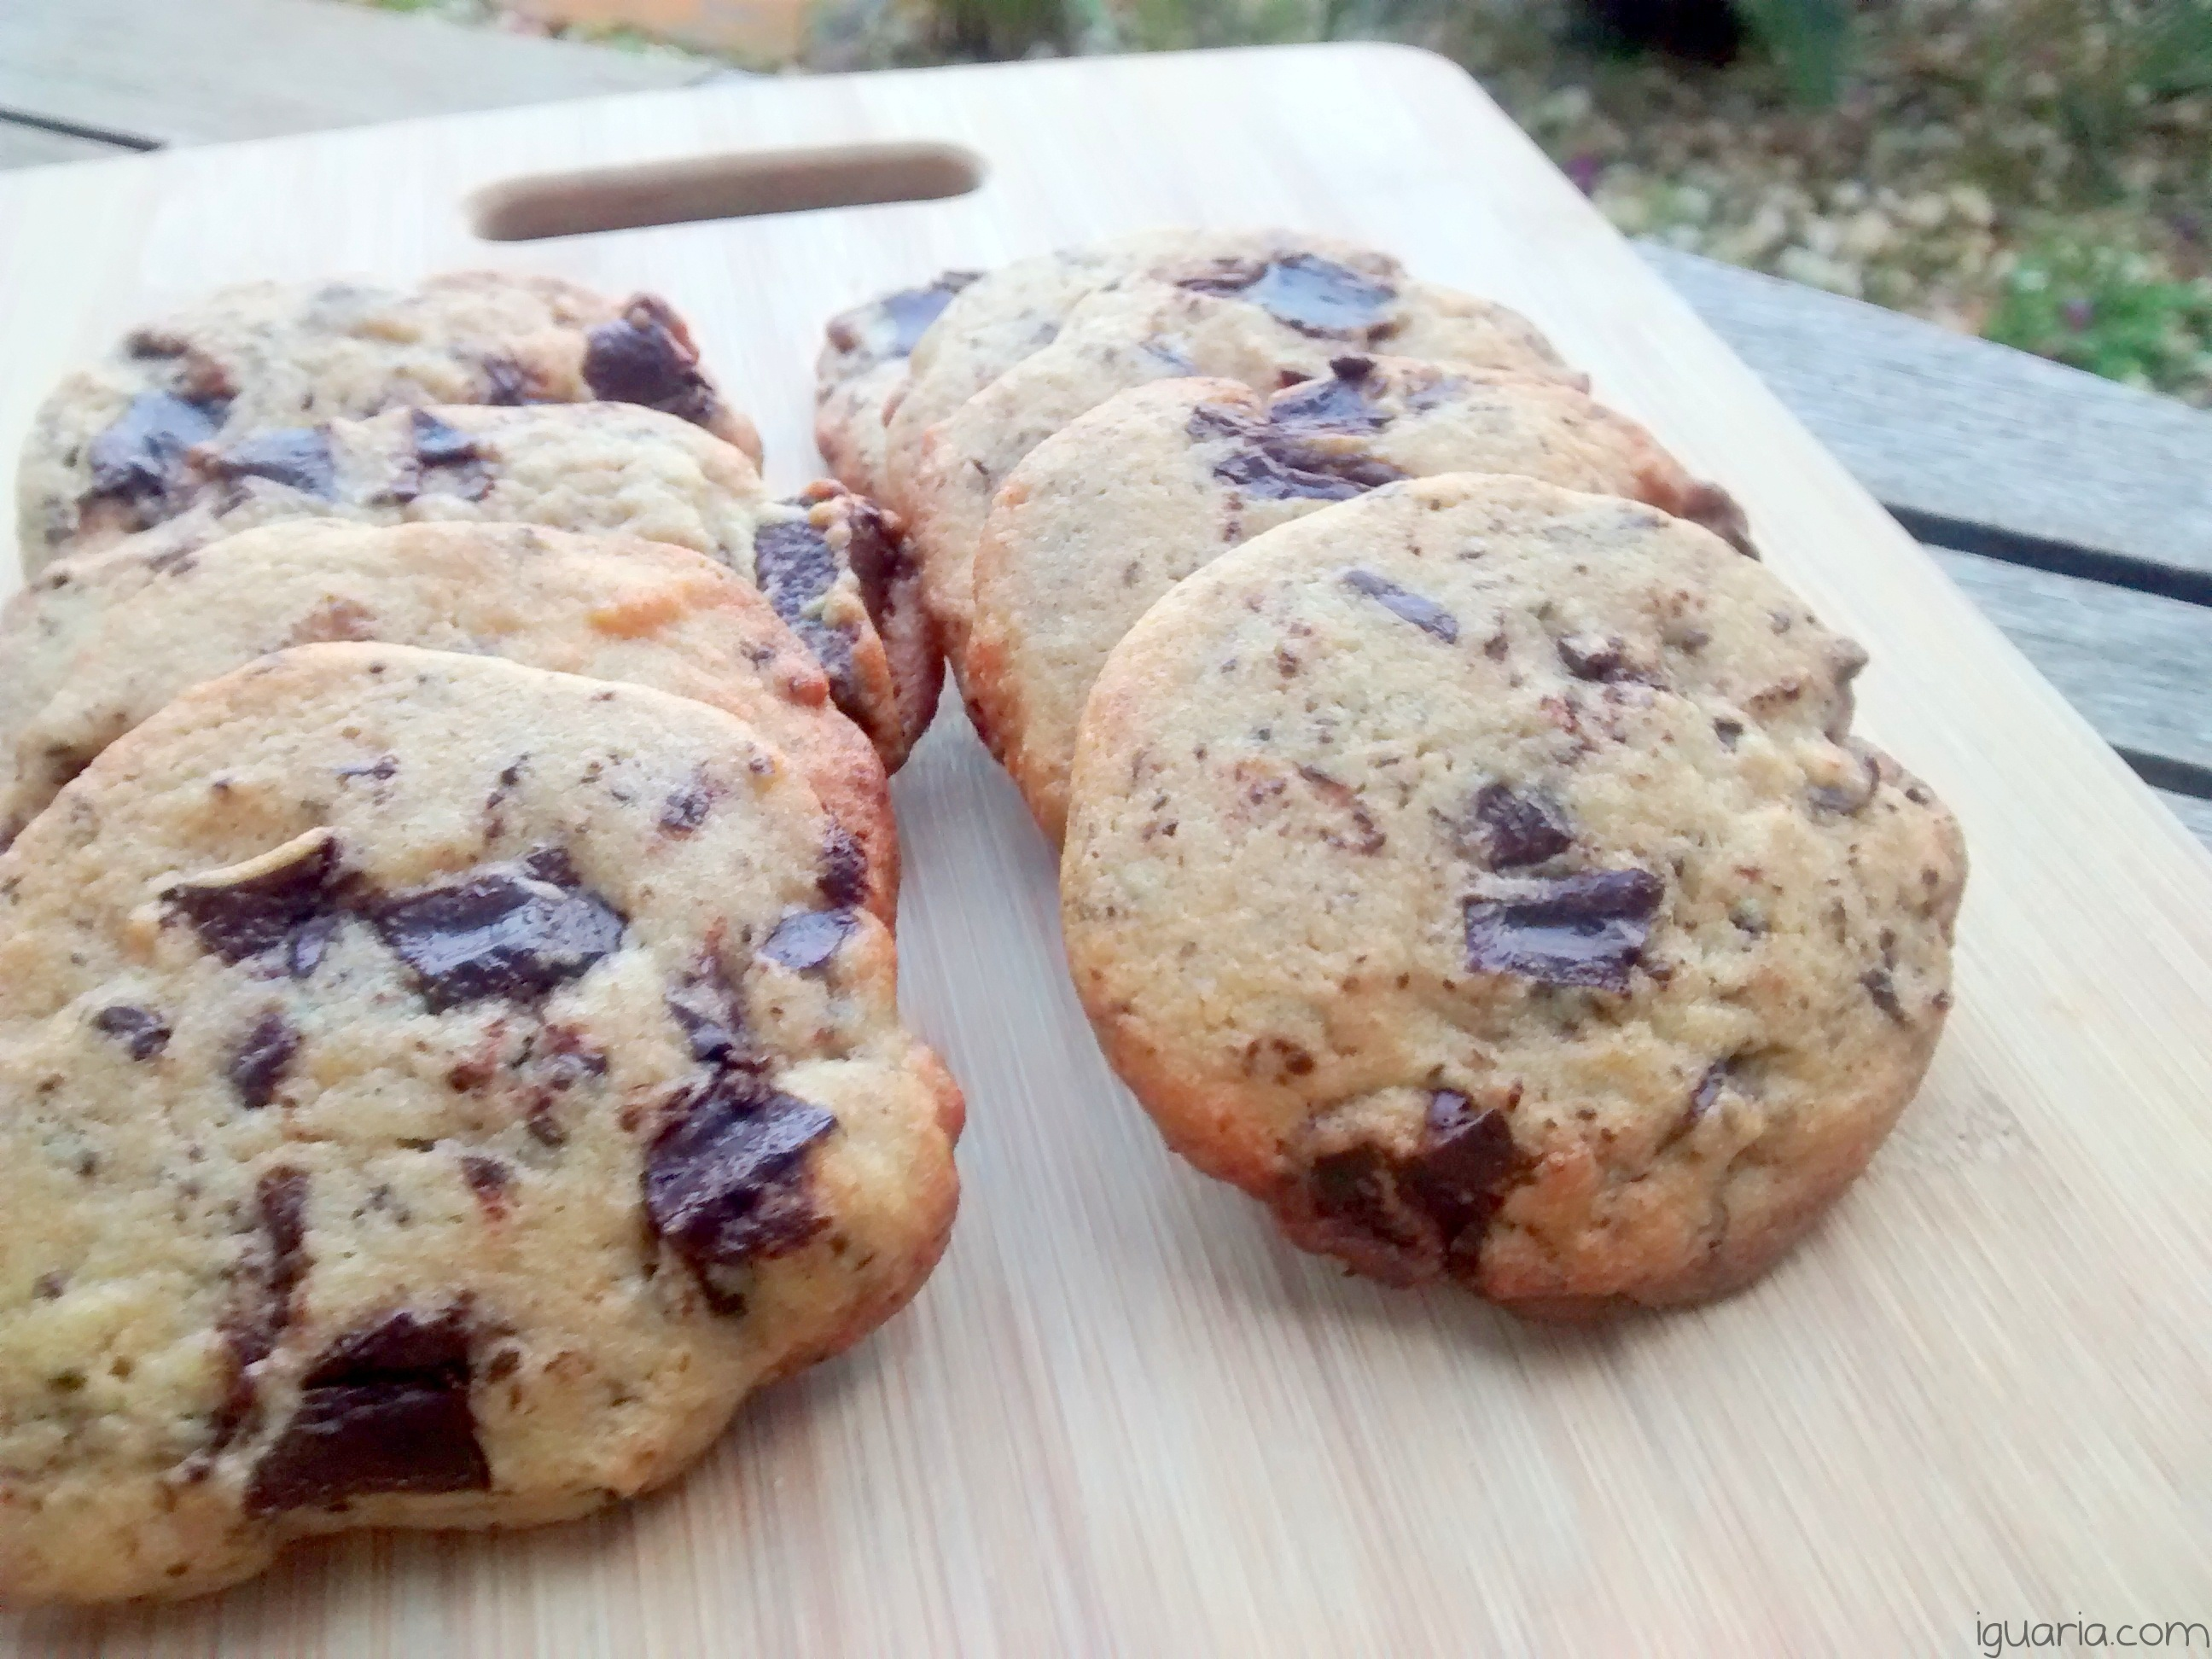 iguaria_cookies-de-manteiga-de-amendoim-e-chocolate